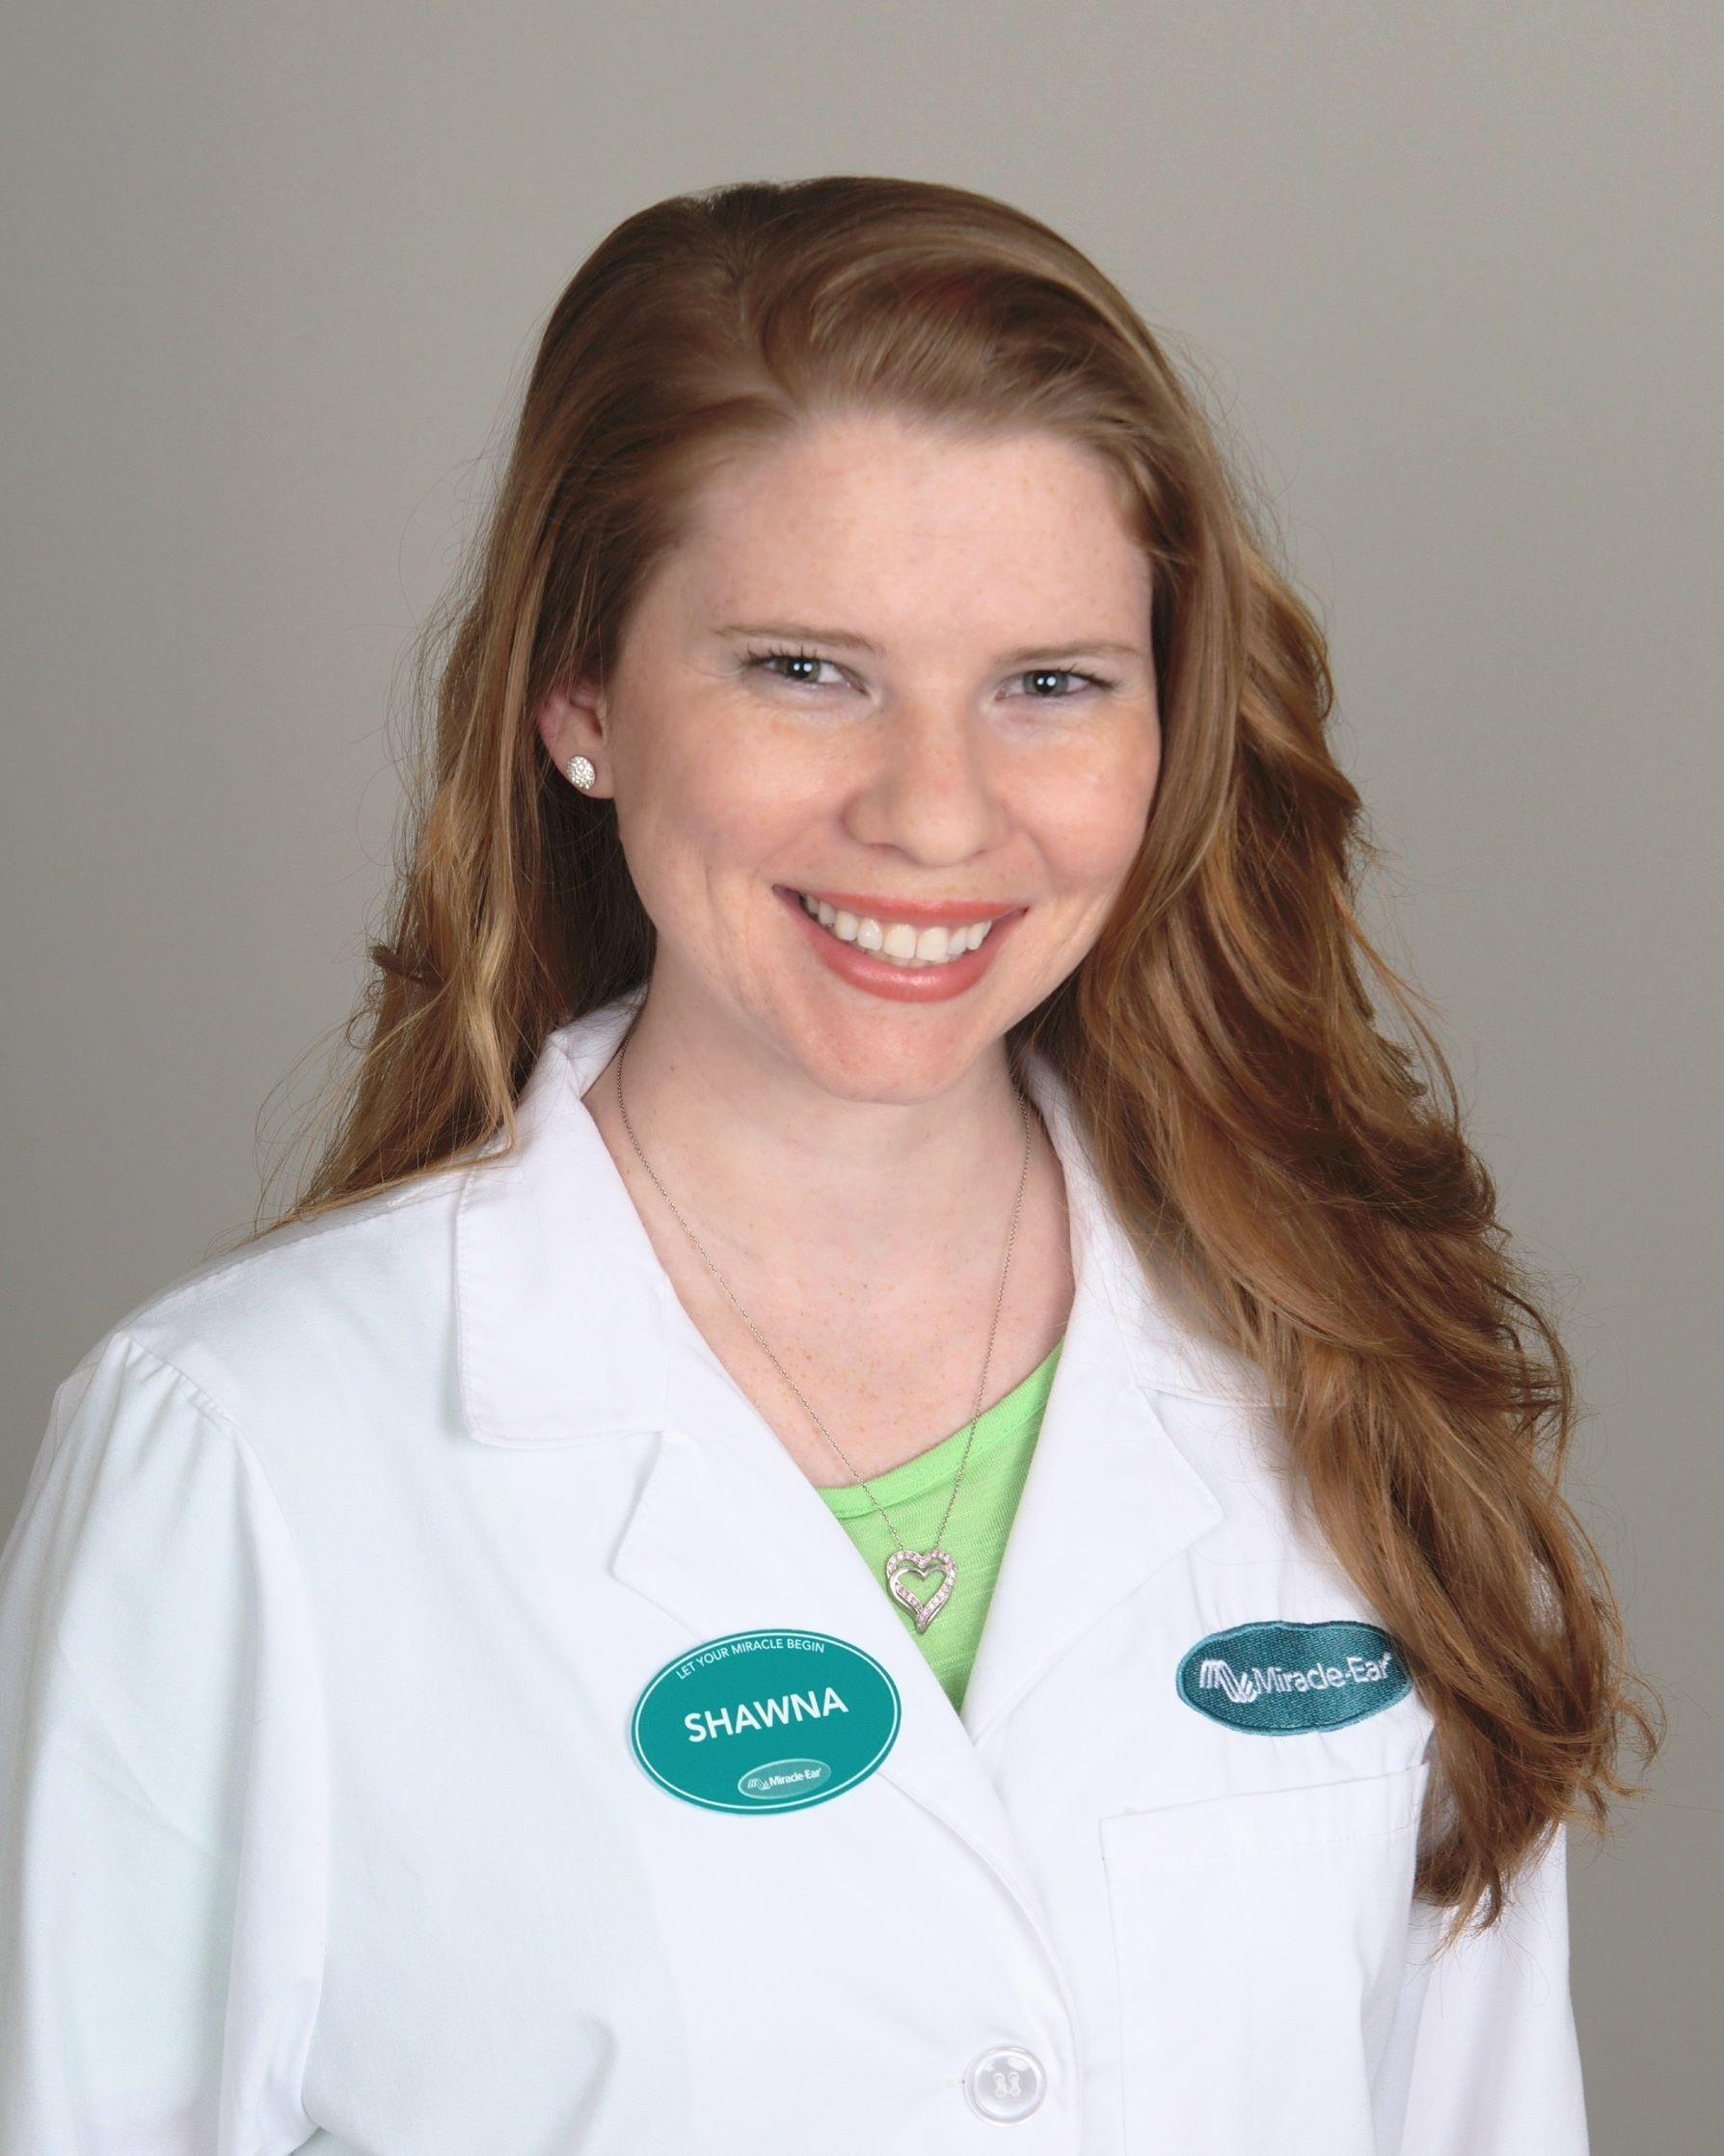 Profile Photo of Shawna - Board Certified in Hearing Instrument Sciences